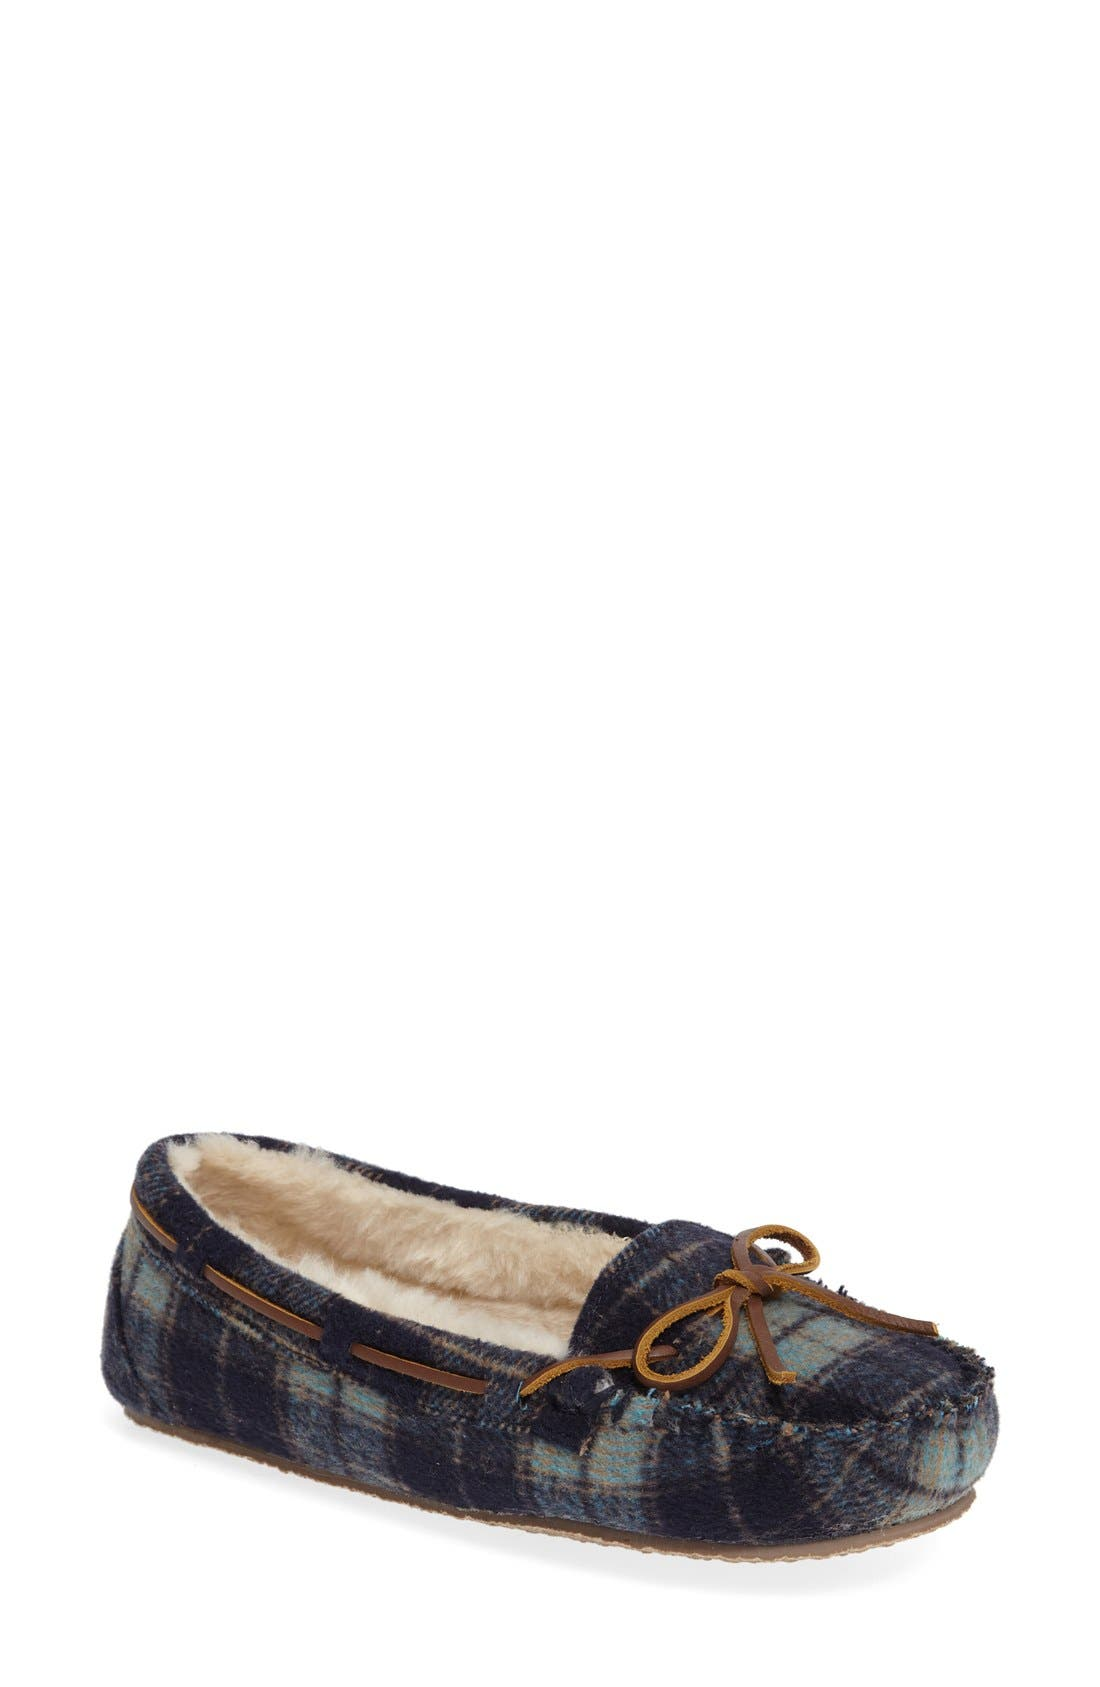 Cally Plaid Faux Fur Lined Slipper,                         Main,                         color, NAVY